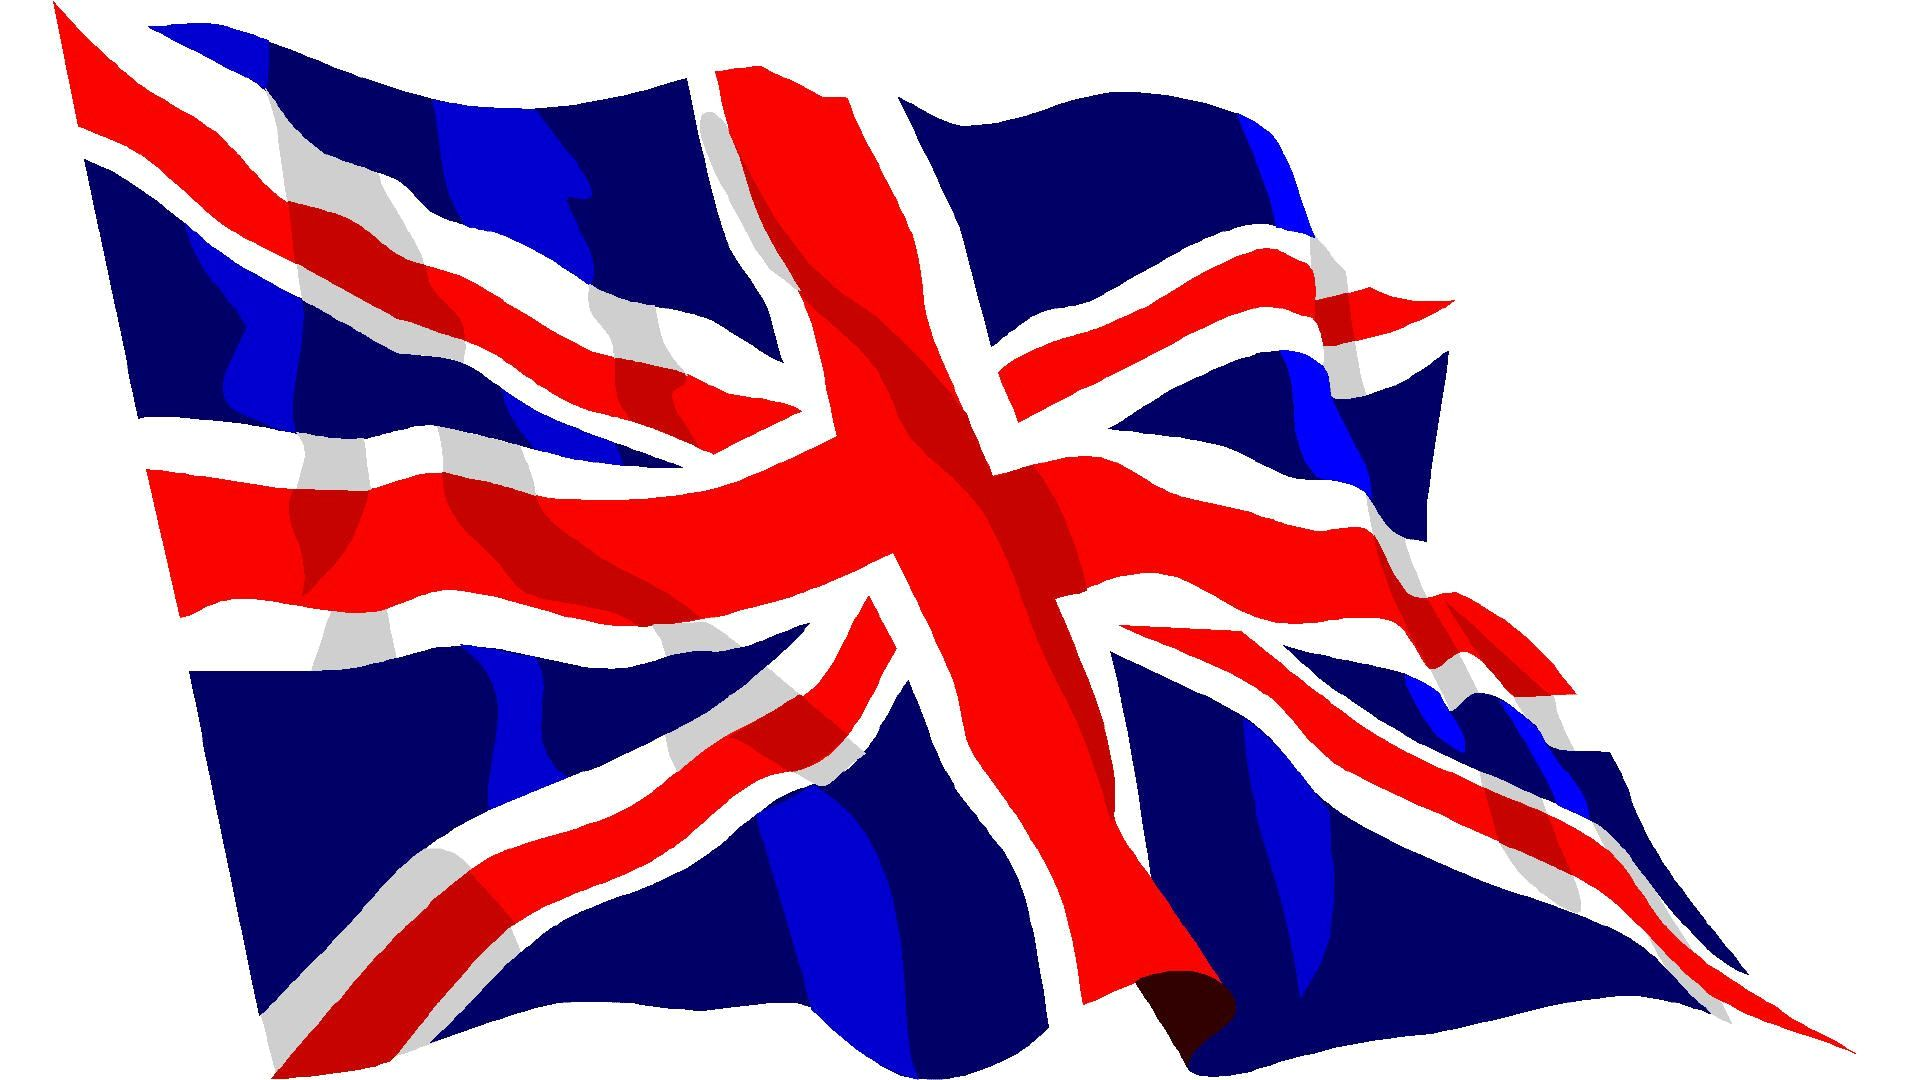 Union Jack Wallpapers Top Free Union Jack Backgrounds